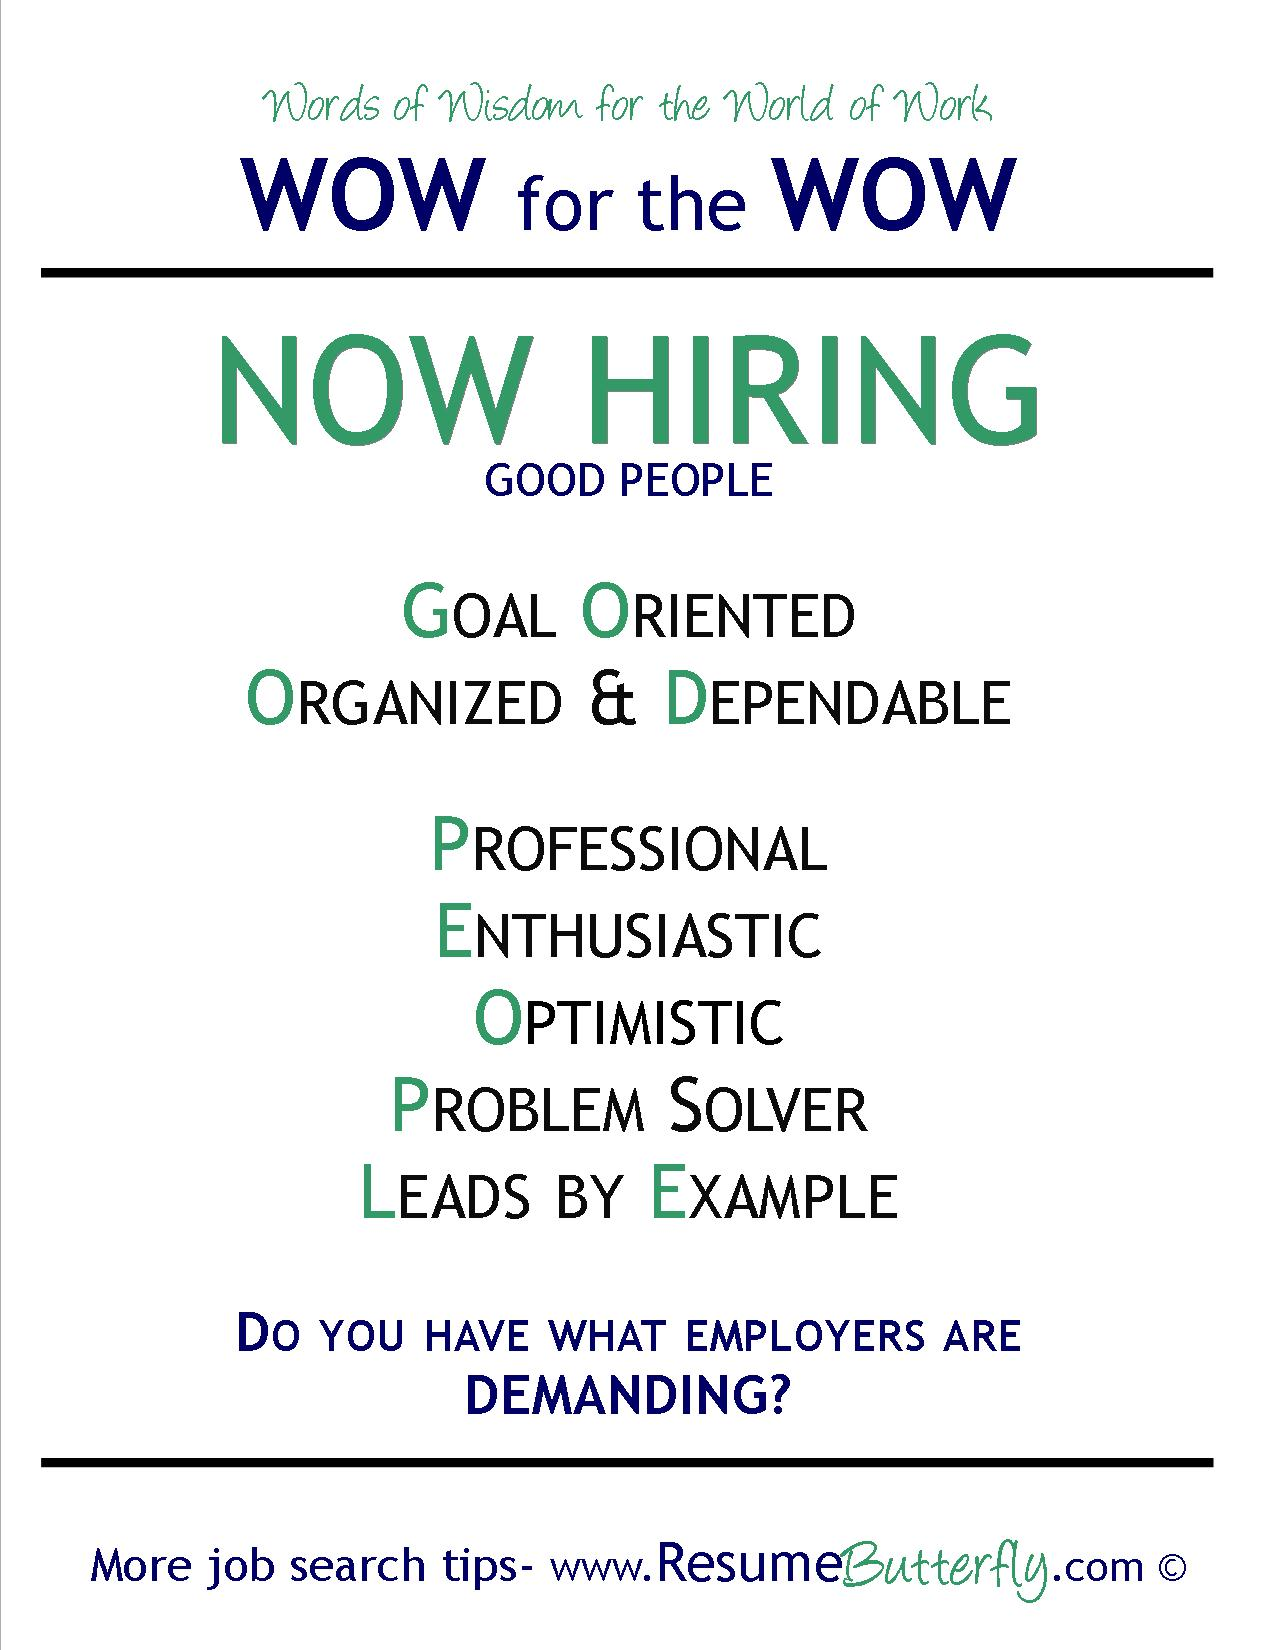 wow for the wow job search skills resume butterfly now 1650